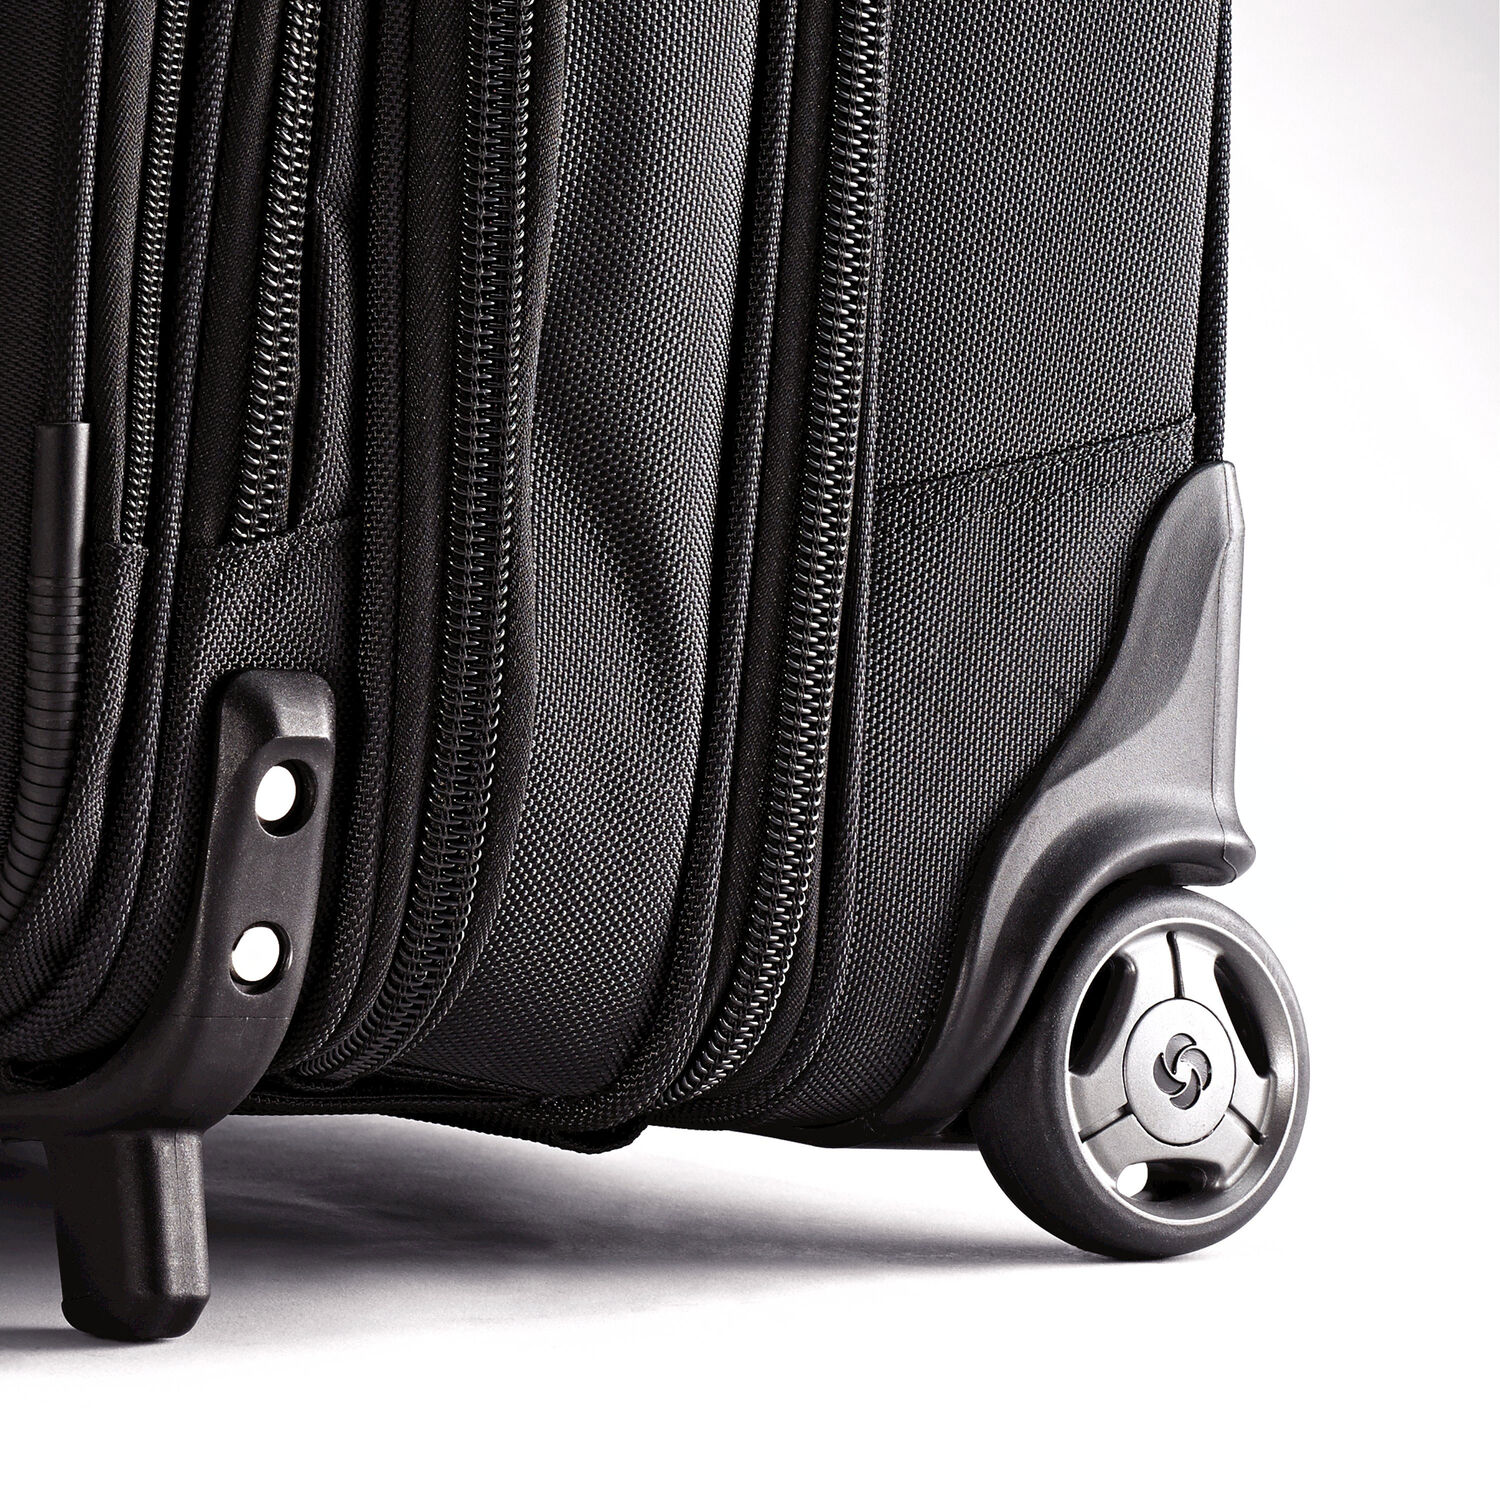 Samsonite Business Wheeled Case Overnighter In The Color Black